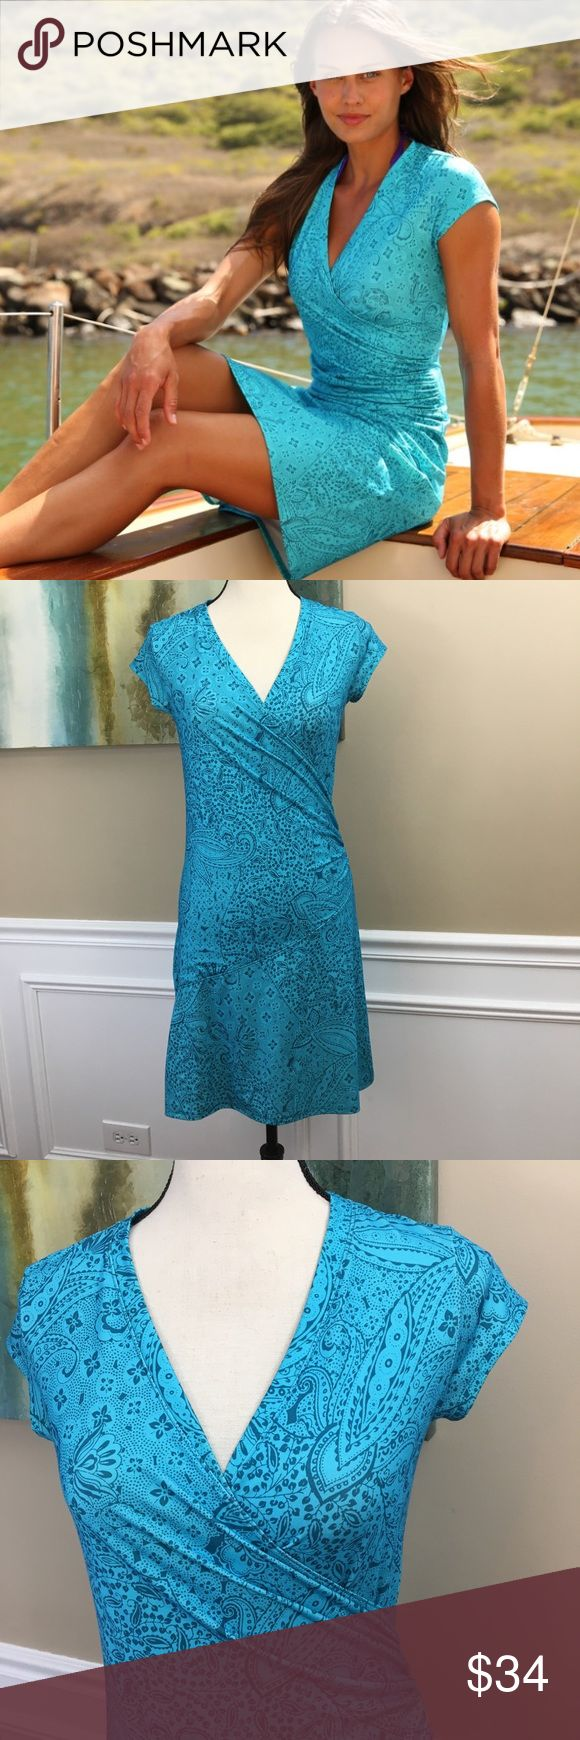 """ATHLETA Printed Nectar Dress XS PETITE ATHLETA Printed Nectar Dress (B20) Tide Blue Fern Paisley Print V-Neck With Faux Wrap Front Look With Ruched Side Super Soft Lightweight 88% Polyester, 12% Lycra Spandex Defined Waist  Women's SZ XSmall Petite MeasurementsLaying Flat Under Arm to UnderArm 16"""" Length 35"""" Athleta Dresses"""